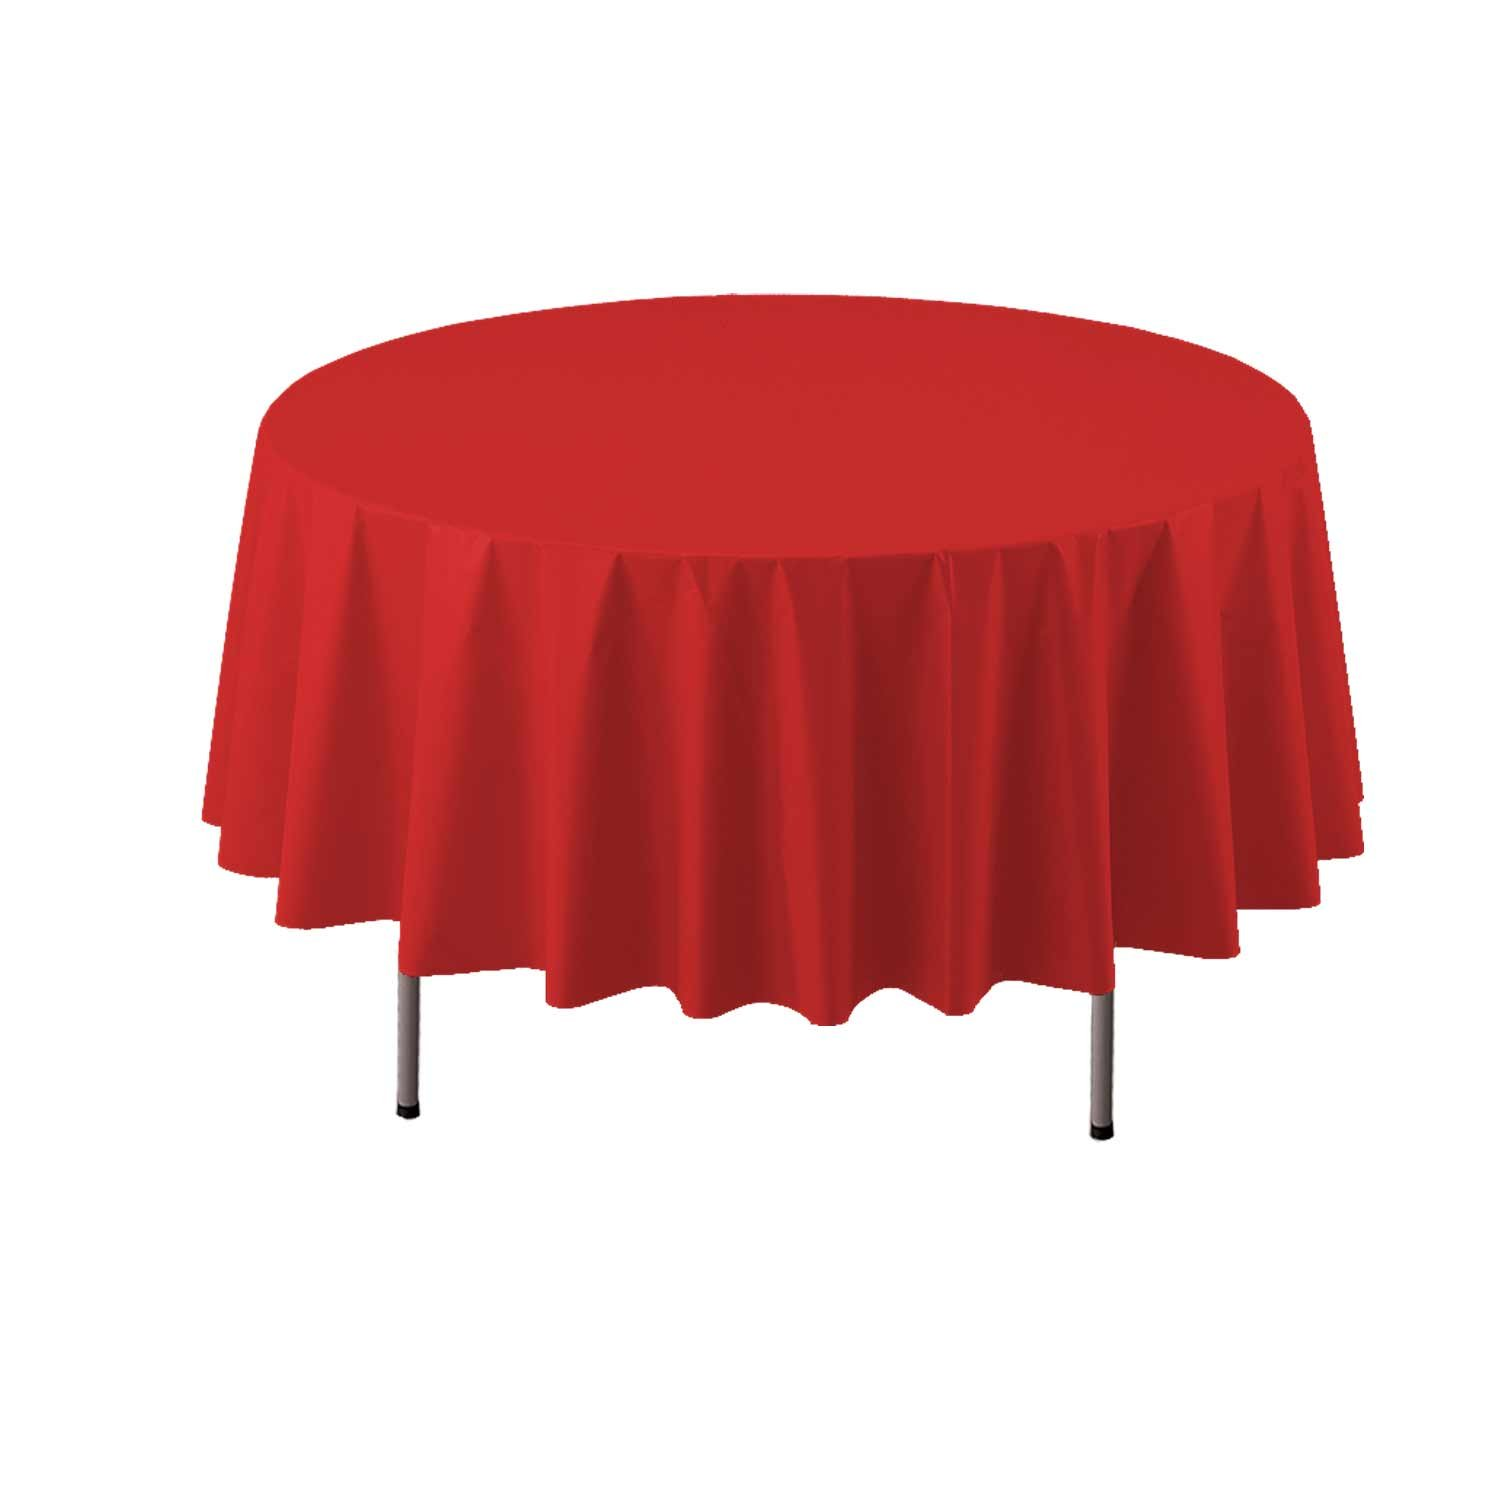 Party Essentials Heavy Duty 84 Round Plastic Table Cover Available in 22 Colors Red